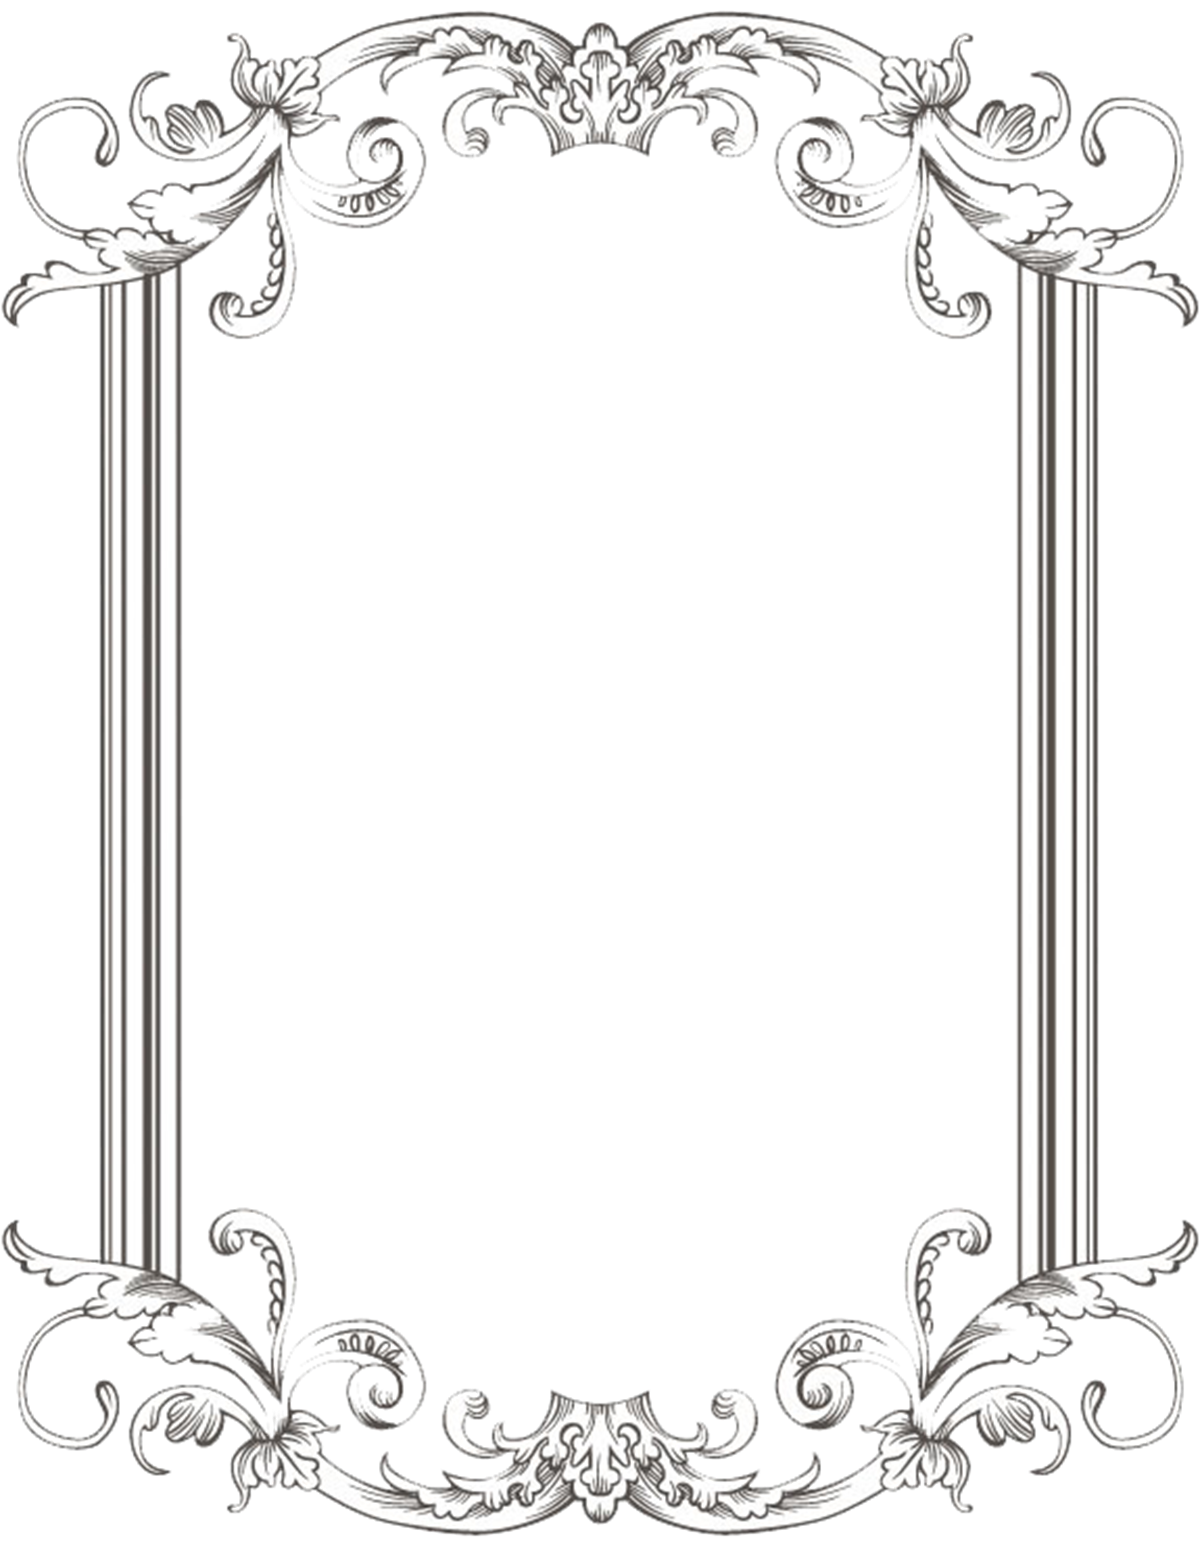 Simple vintage ornaments icon png. Browse and download frame